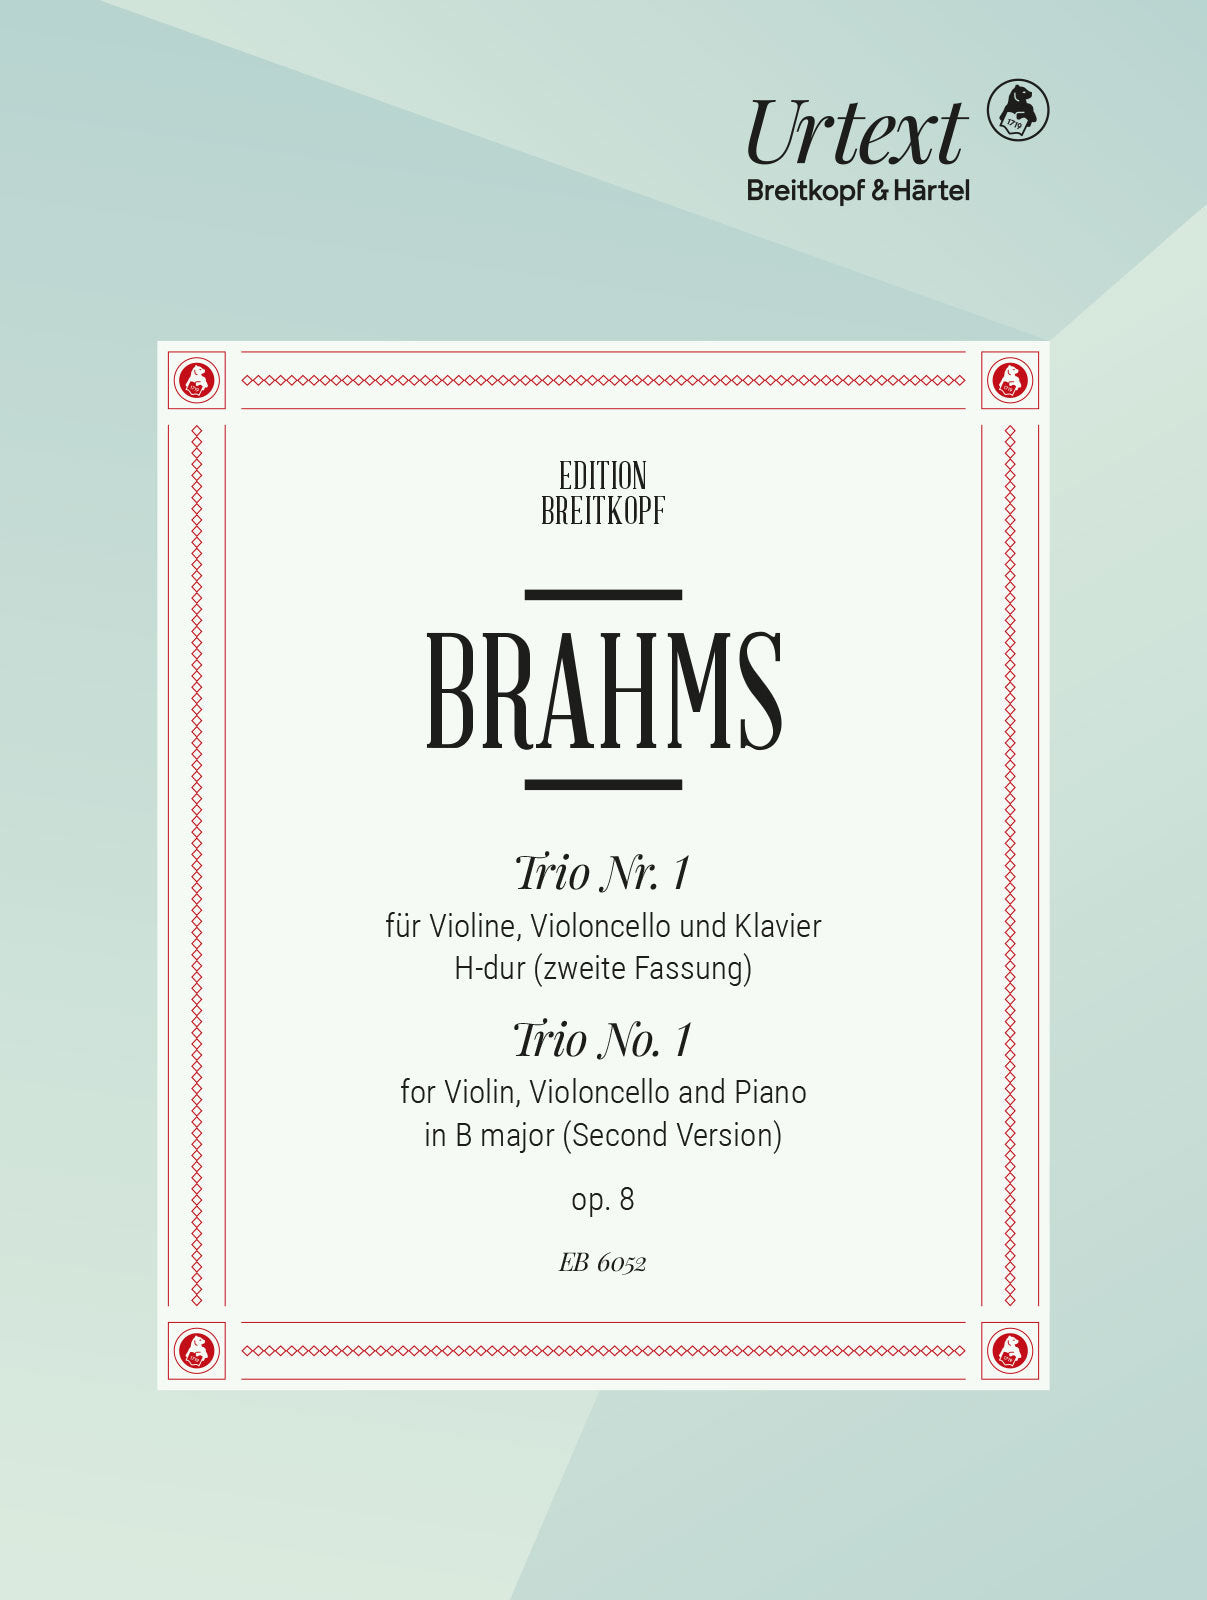 Brahms: Piano Trio No. 1 in B Major, Op. 8